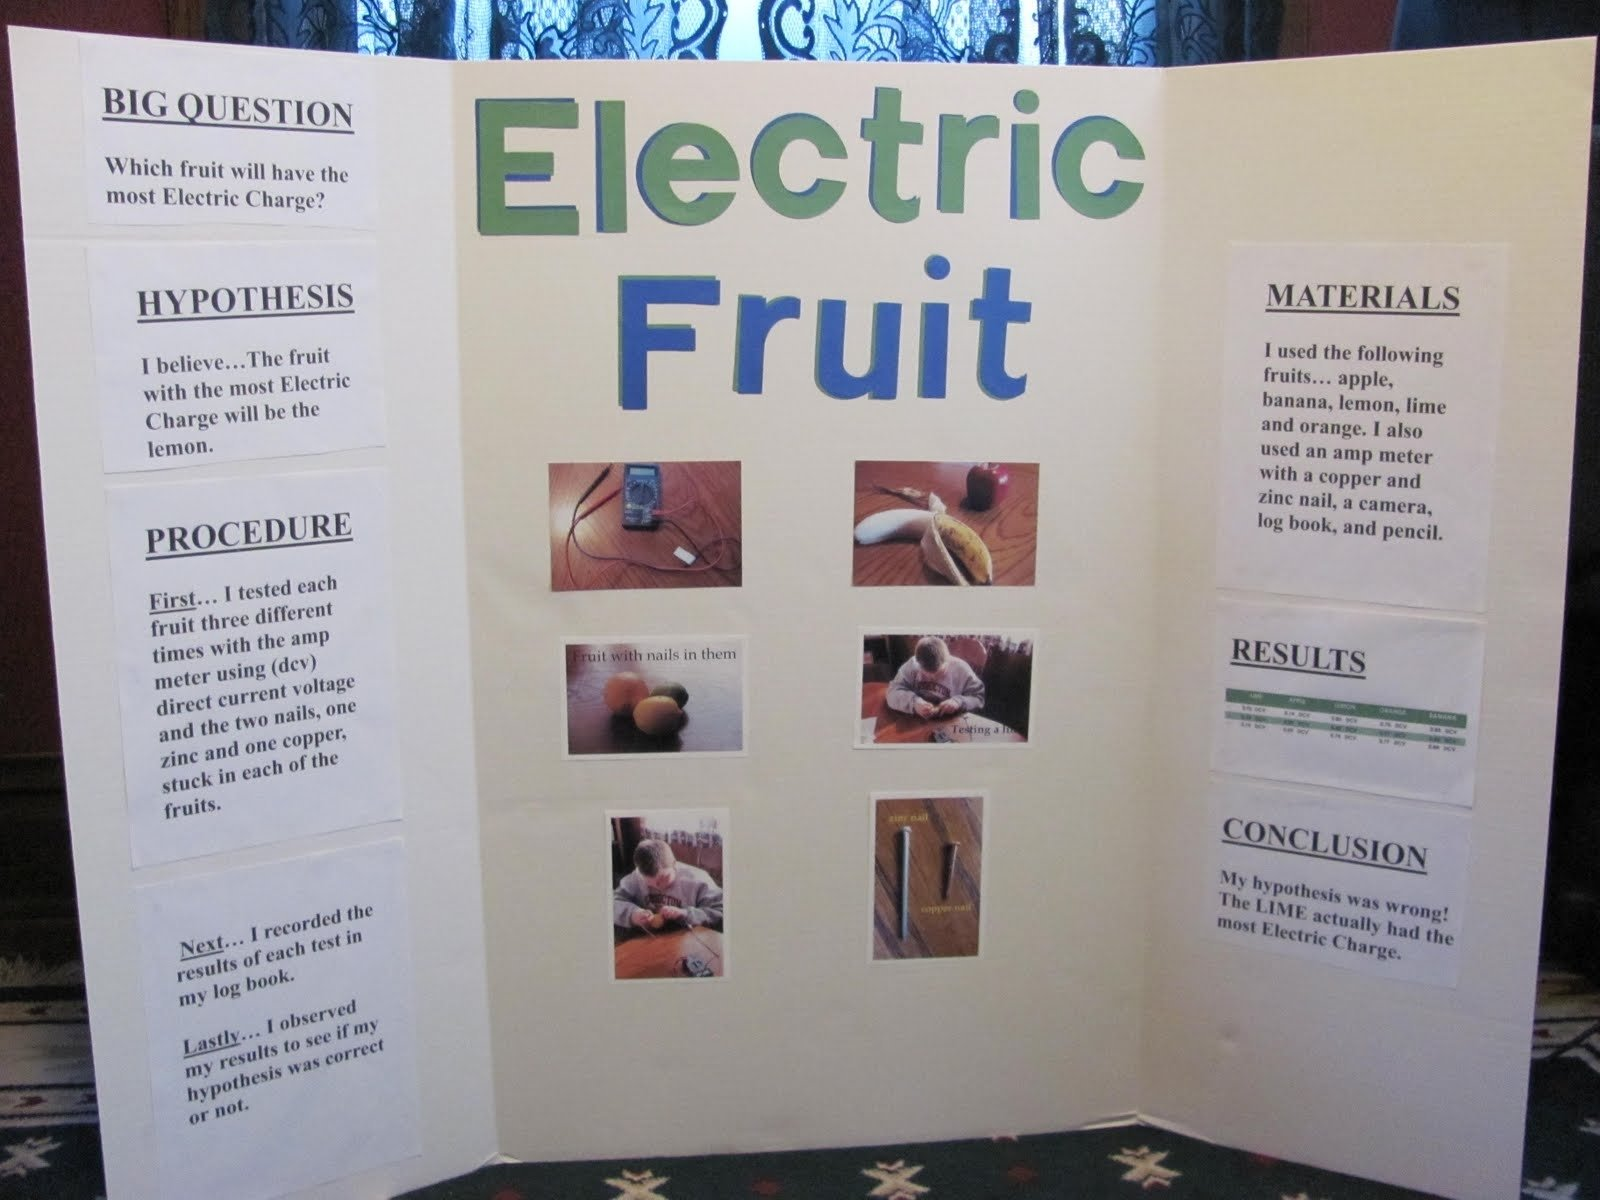 10 Amazing Ideas For Science Fair Projects For 6Th Grade science fair projects he estimated the lemon would but actually 7